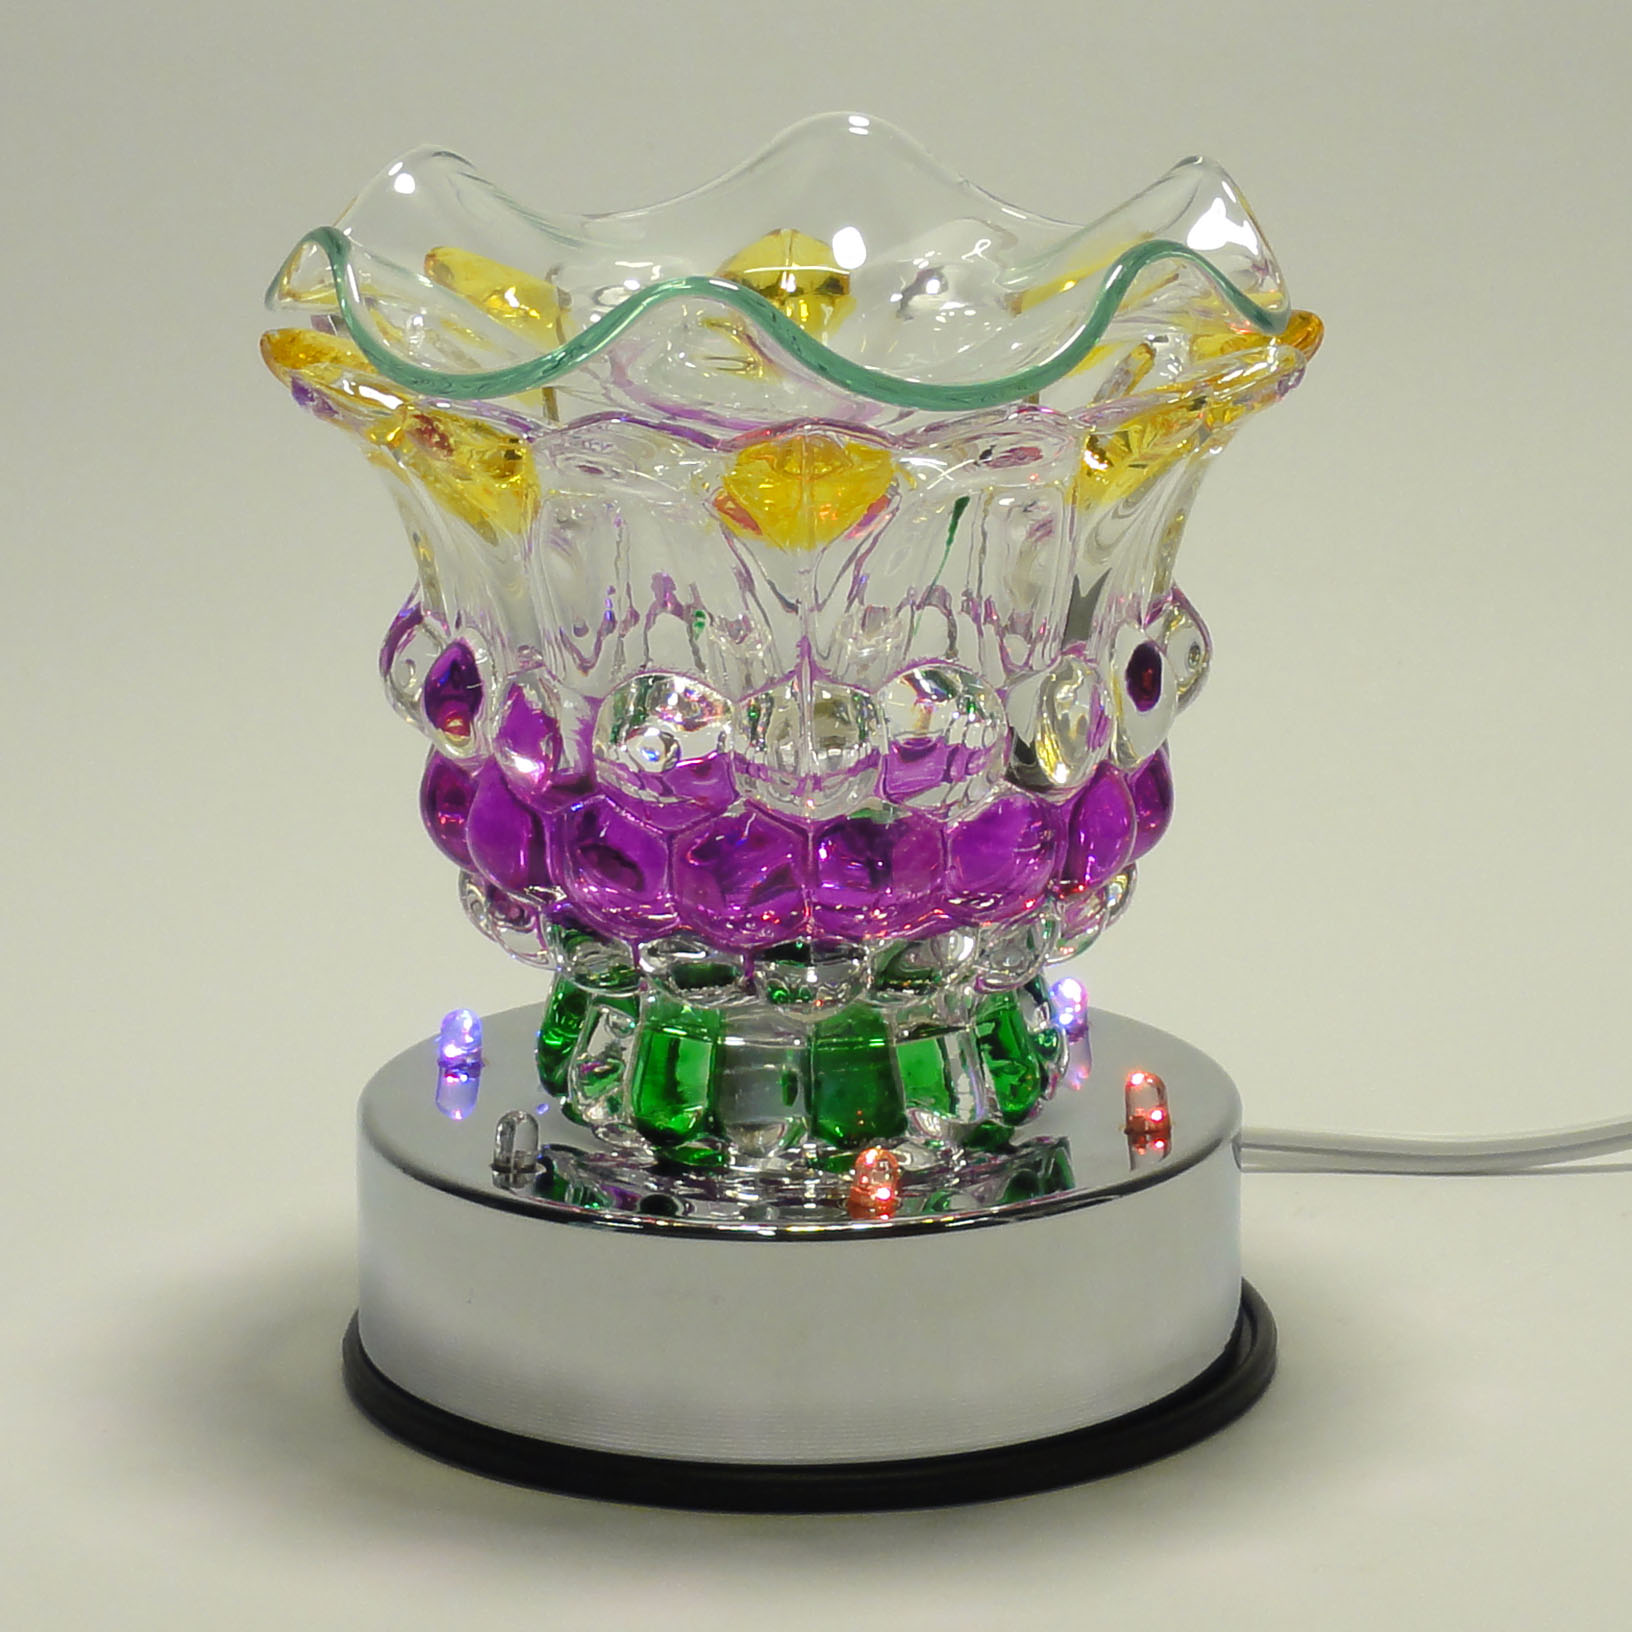 Glass Multi Colored Electric Touch Lamp With Led Light Oil